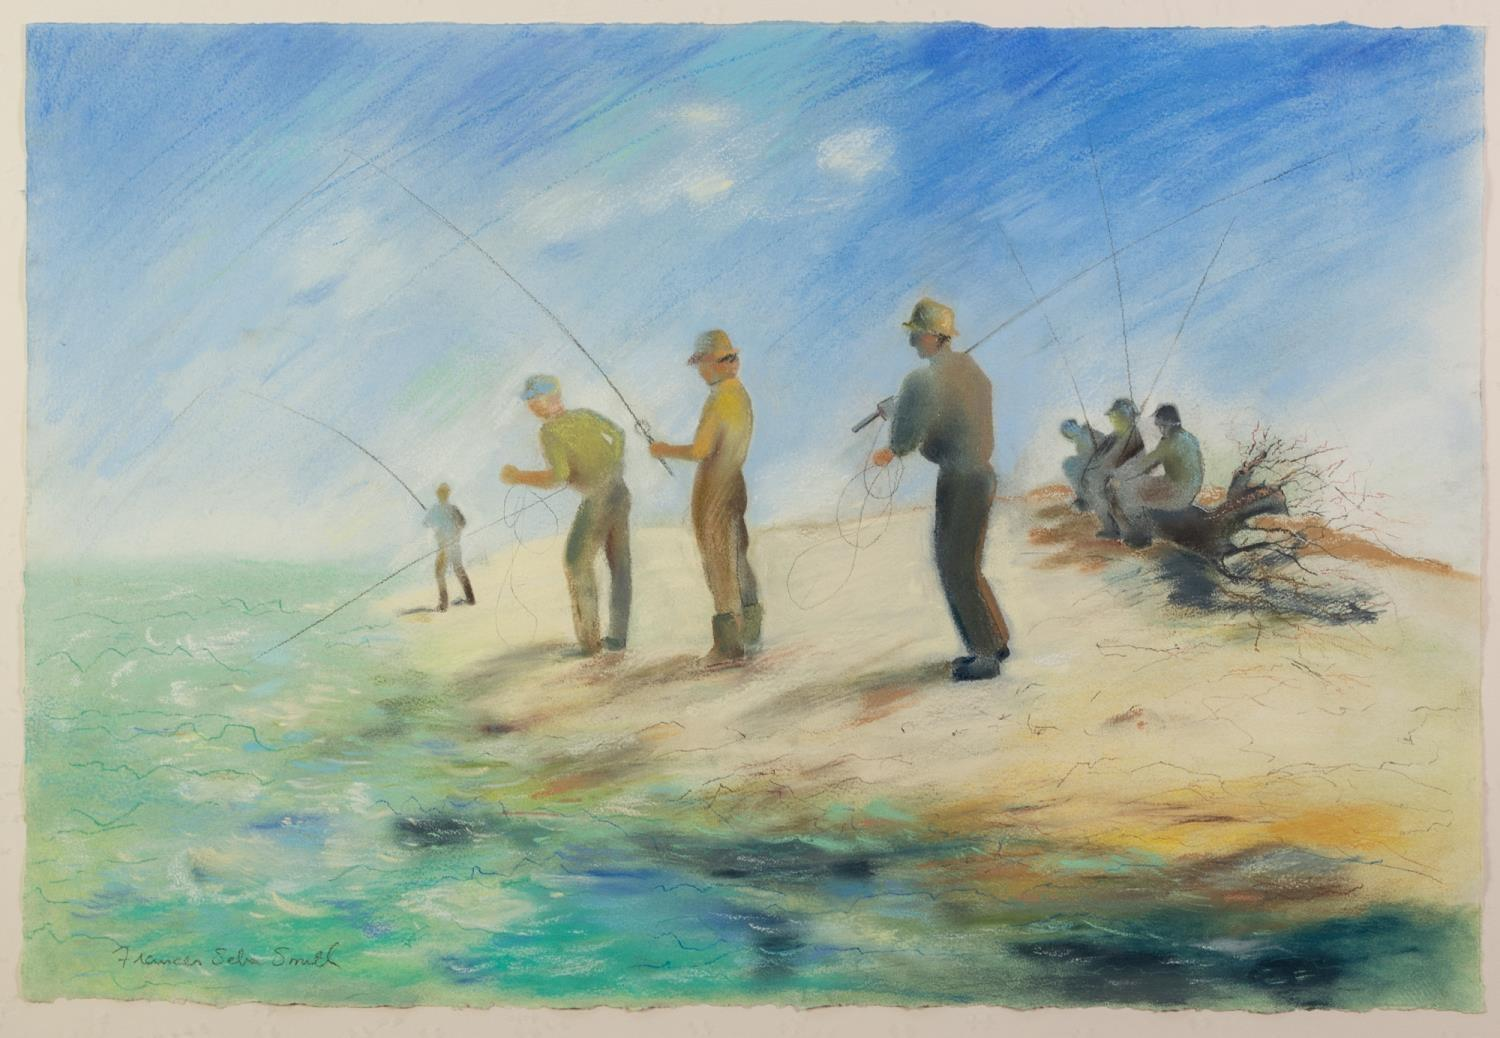 FRANCES SEBA SMITH (MODERN) PASTEL DRAWING Men fishing Signed 20? x 29? (50.8cm x 73.7cm) C/R-good